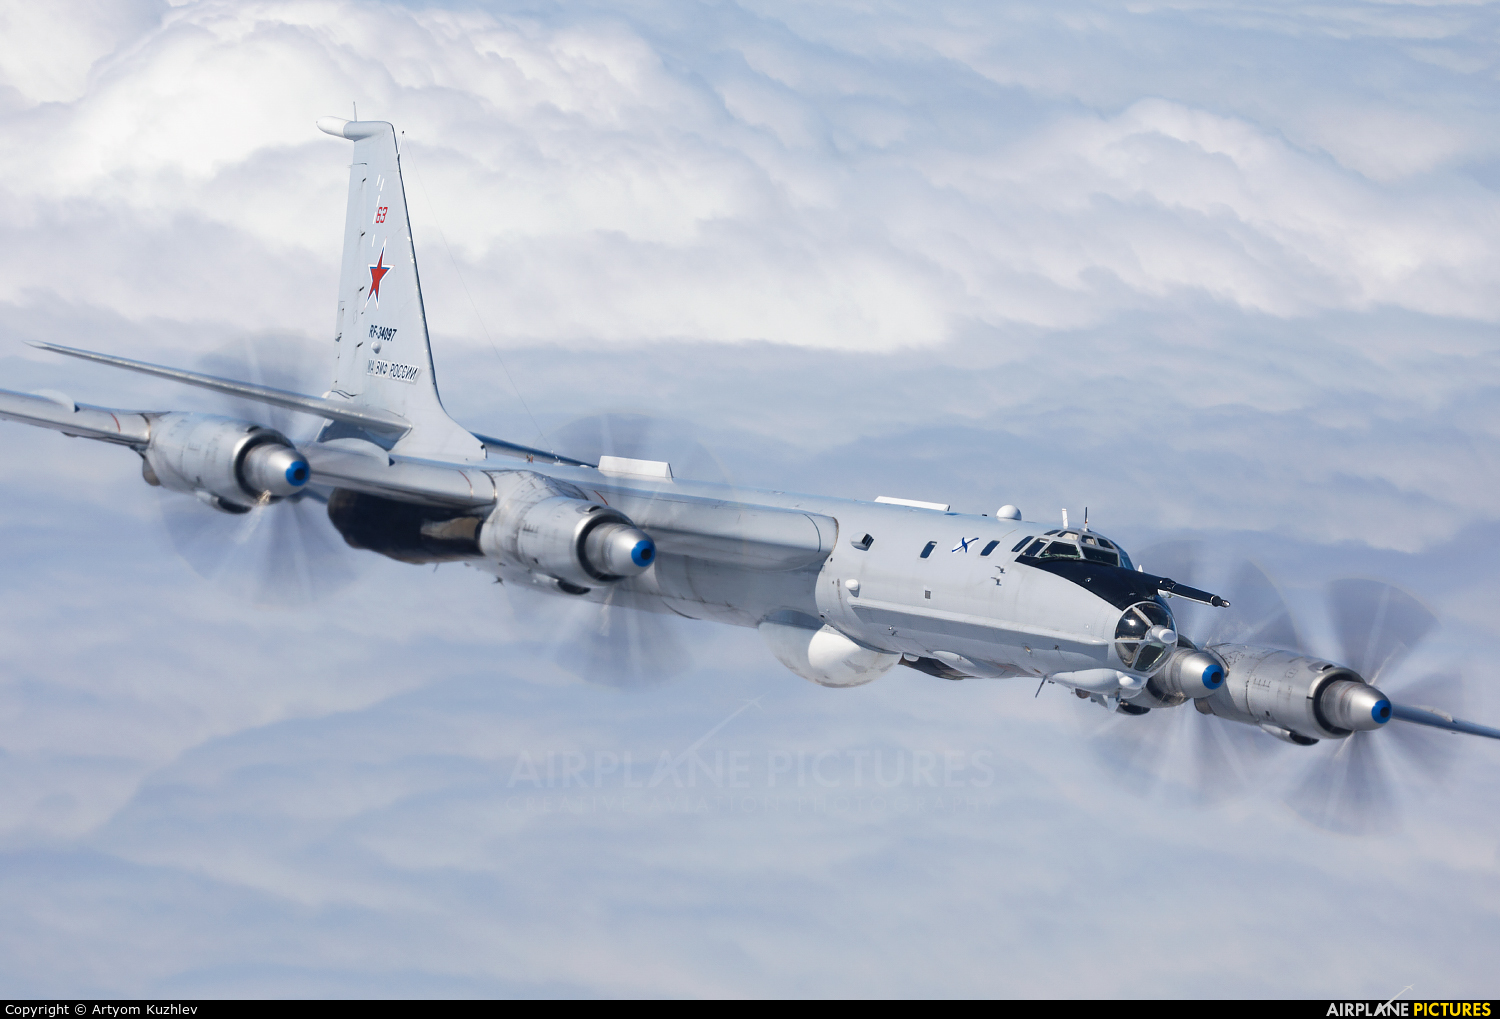 Russia - Navy RF-34097 aircraft at In Flight - Russia